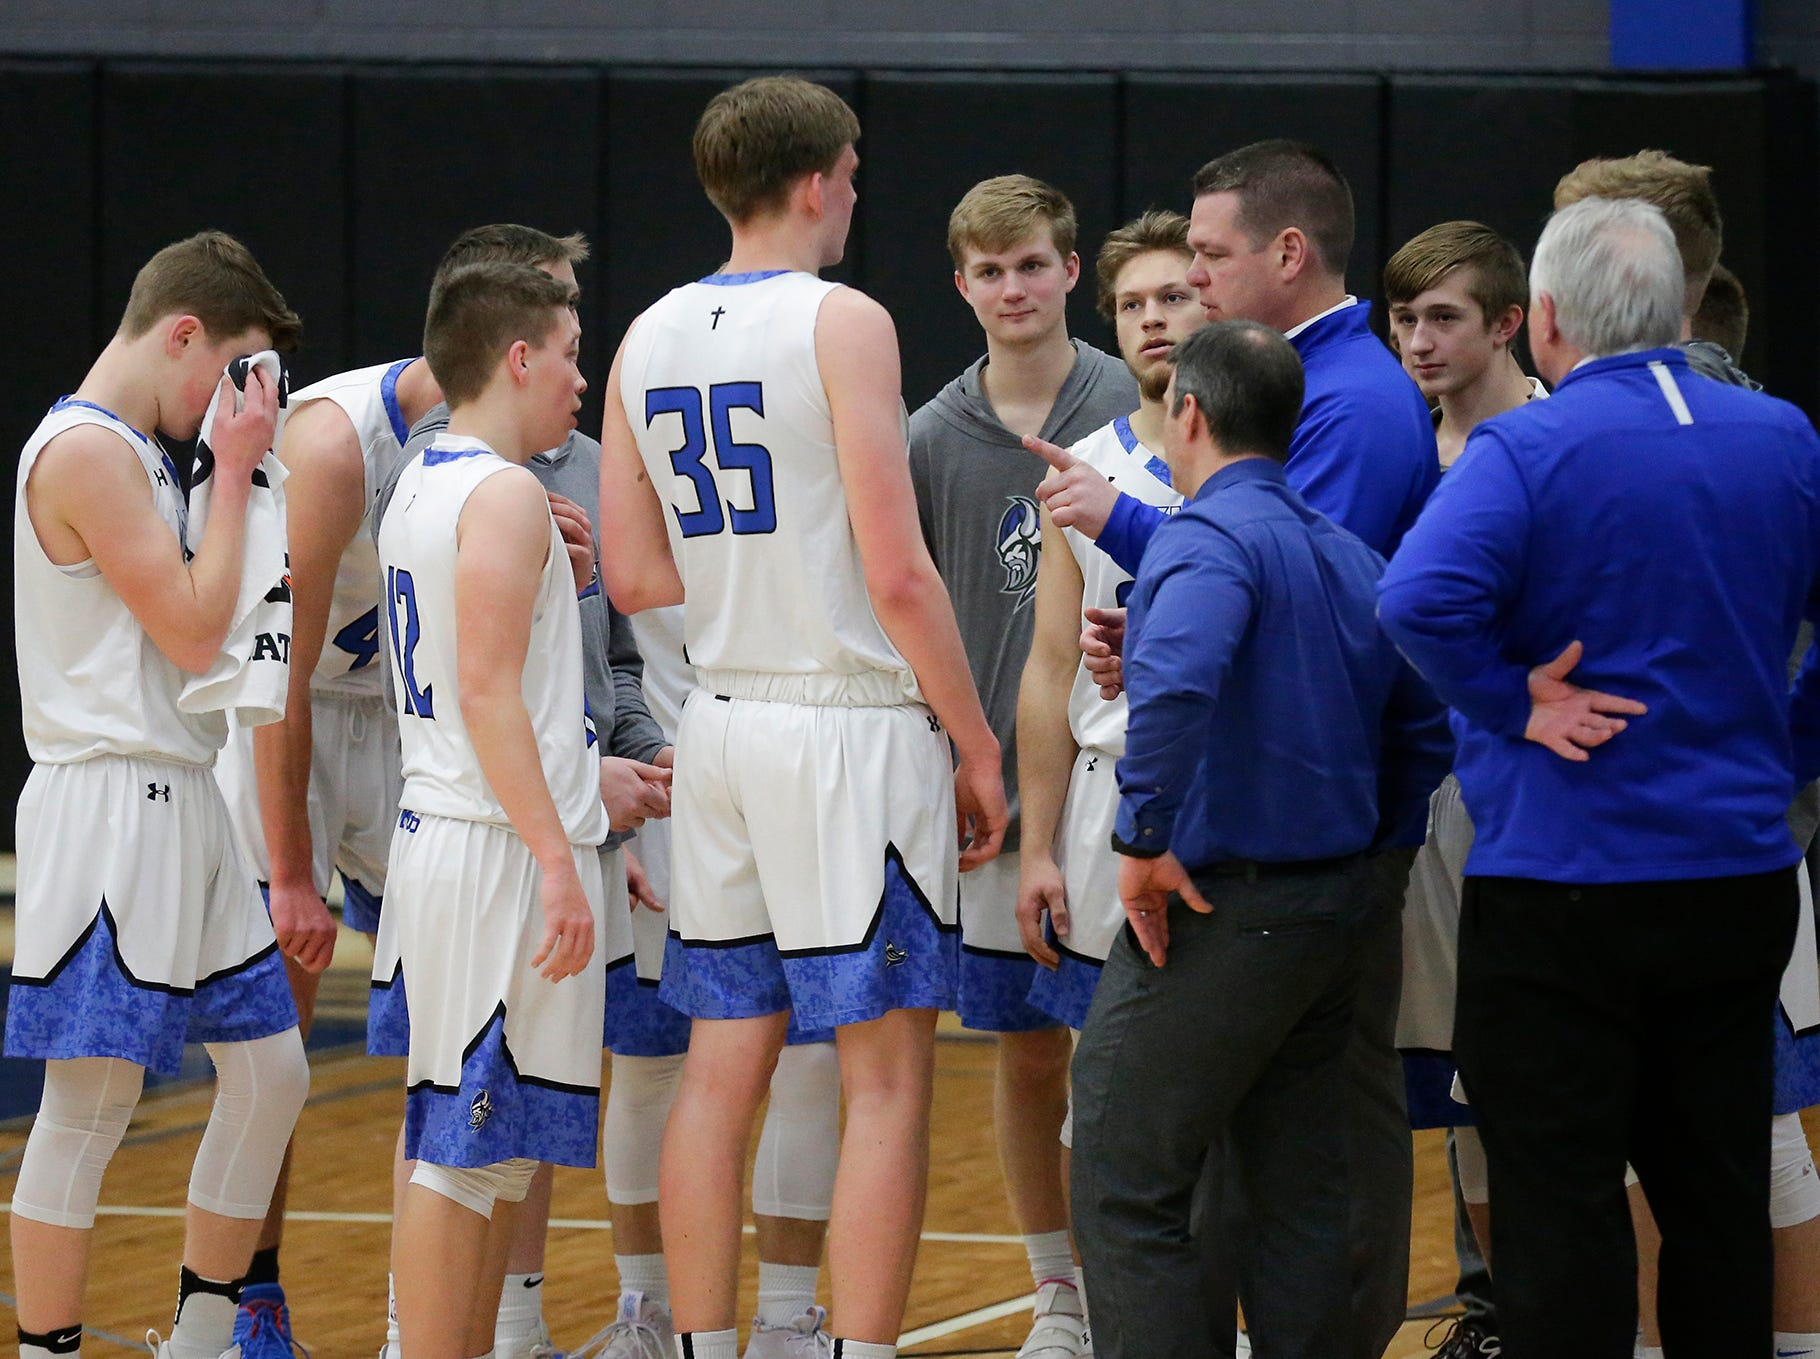 Winnebago Lutheran Academy boys basketball's head coach Marty Nell talks to his team during a time out during their game against St Mary's Springs Academy Thursday, February 21, 2019 in Fond du Lac, Wisconsin. Winnebago Lutheran Academy won the game 95-86. Doug Raflik/USA TODAY NETWORK-Wisconsin